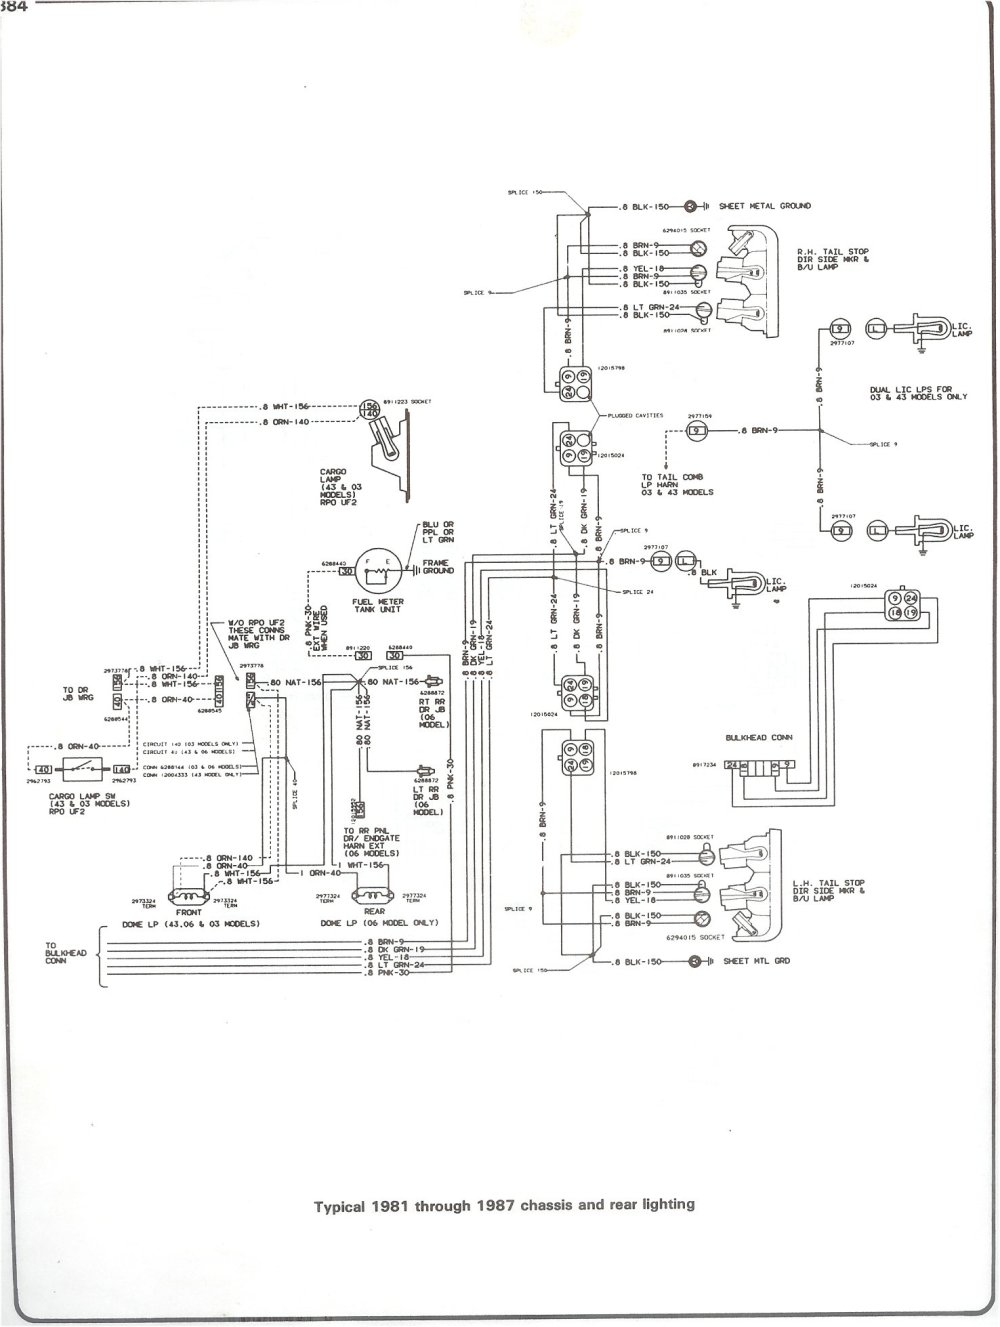 medium resolution of complete 73 87 wiring diagrams 2001 chevy truck wiring diagram 81 87 chassis and rear lighting